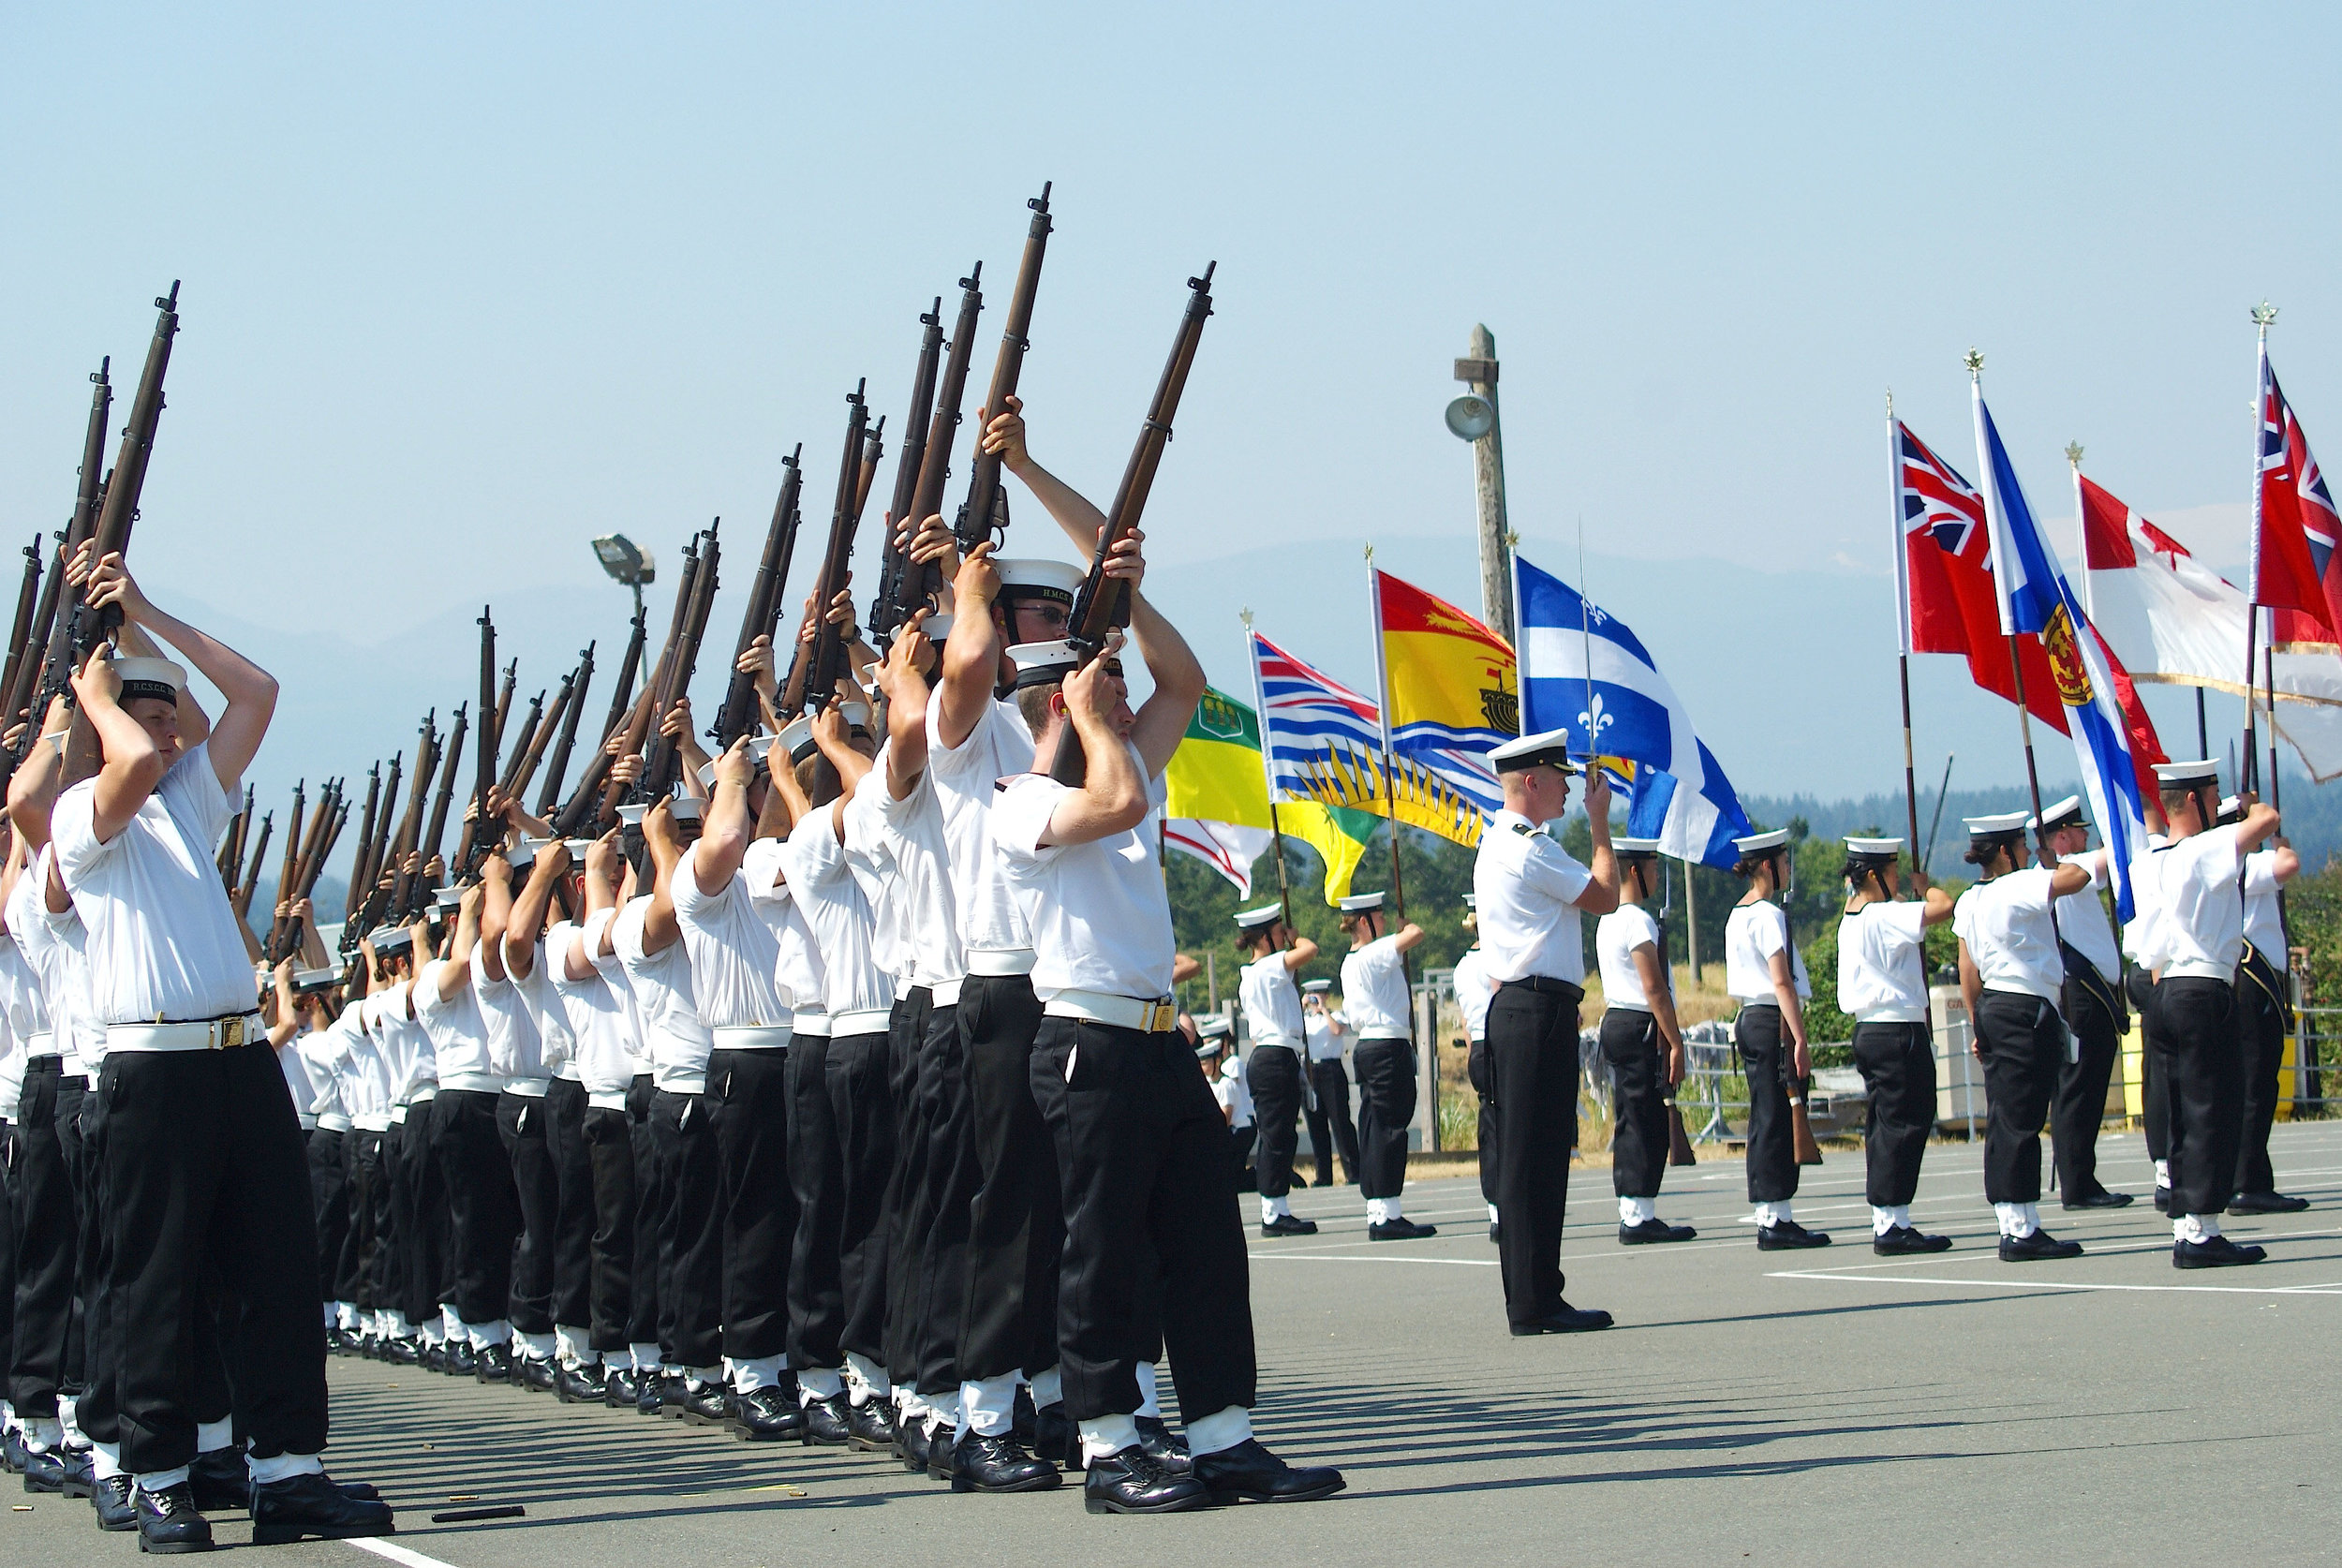 Skills, traditions, and pride demonstrated by Royal Canadian Sea Cadets. (deborah morrow)